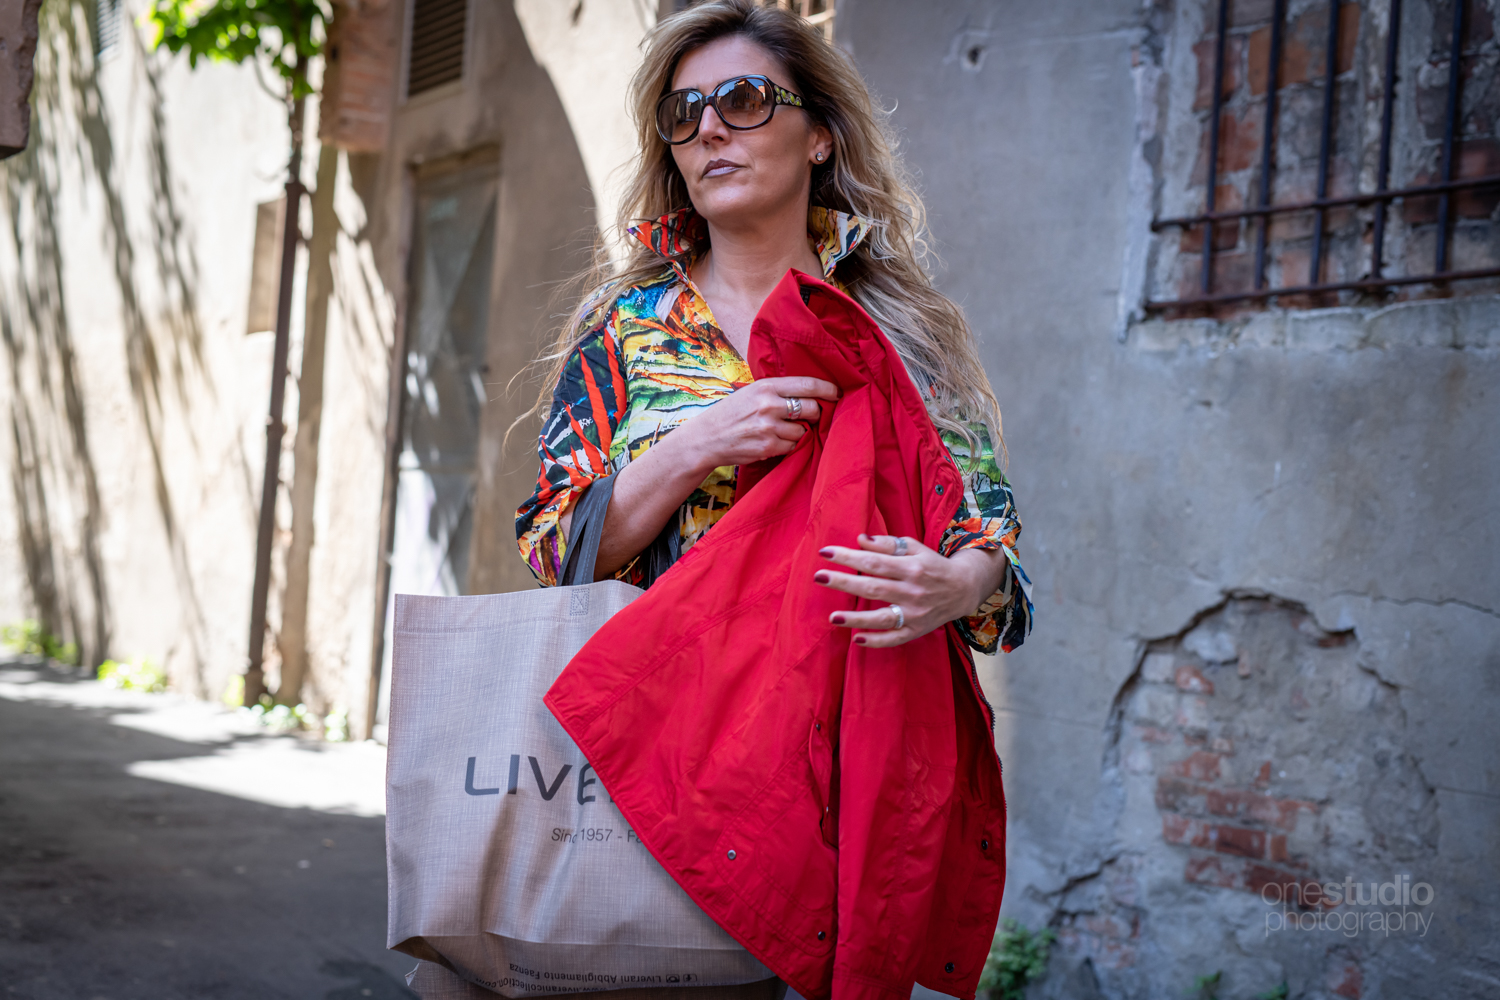 https://lnx.mirkone.it/wp-content/uploads/2019/06/mirk_ONE-life-style-liverani-faenza-0008.jpg